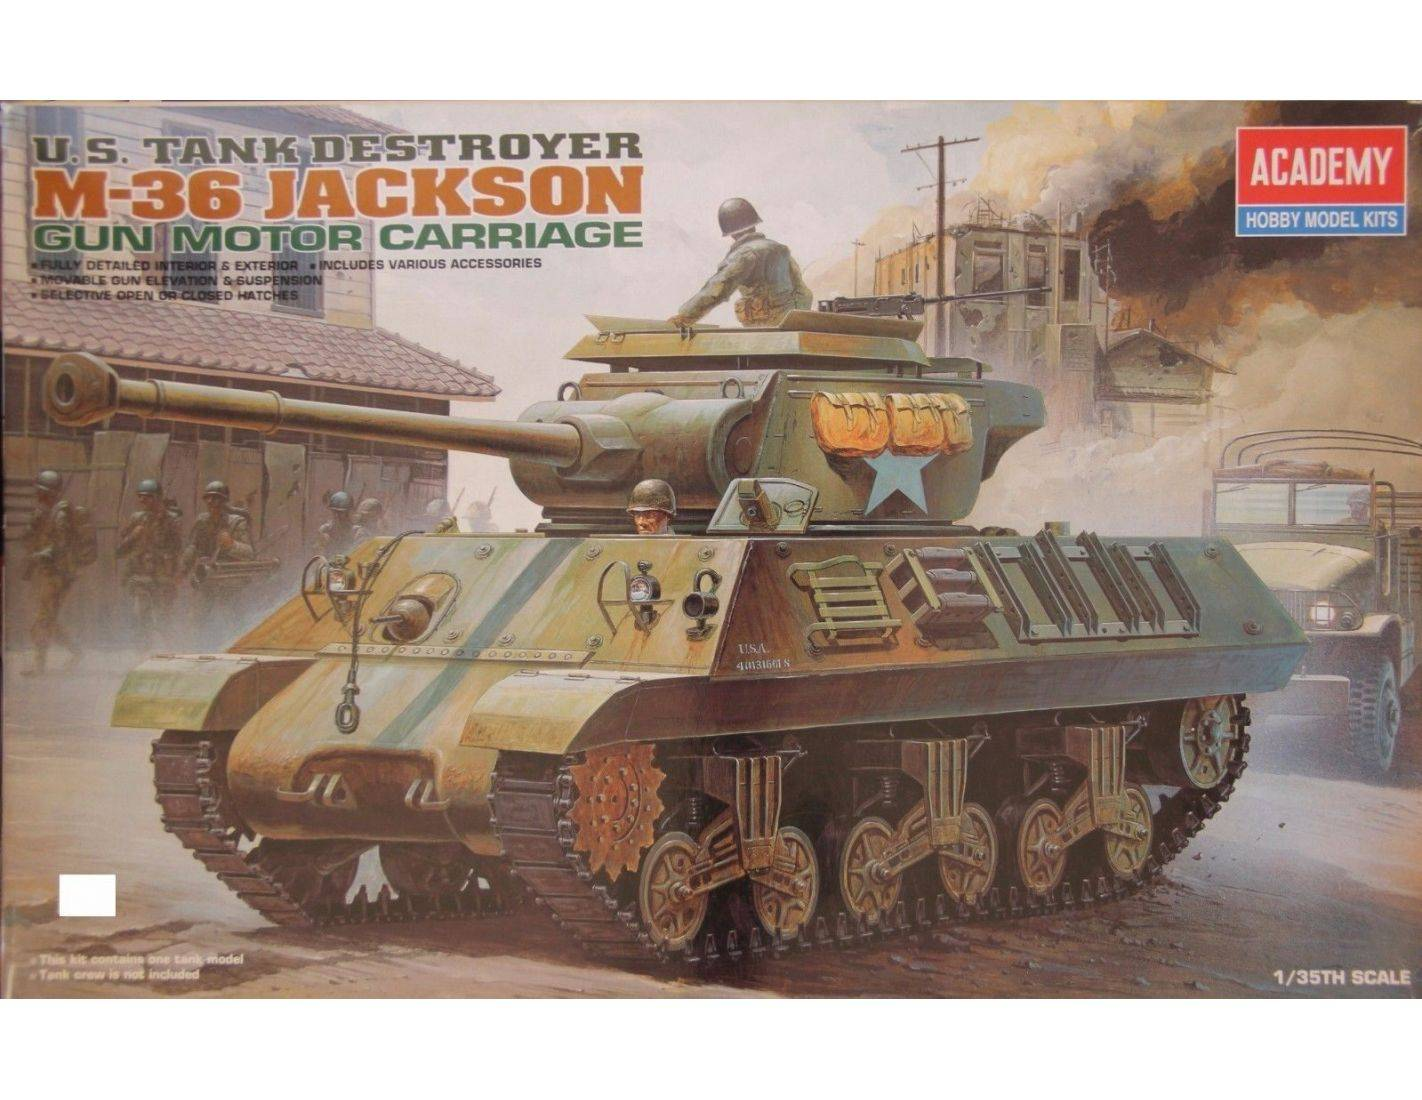 ACADEMY 1395 U.S. TANK DESTROYER M-36 JACKSON GUN MOTOR CARRIAGE 1:35 Kit Modellino